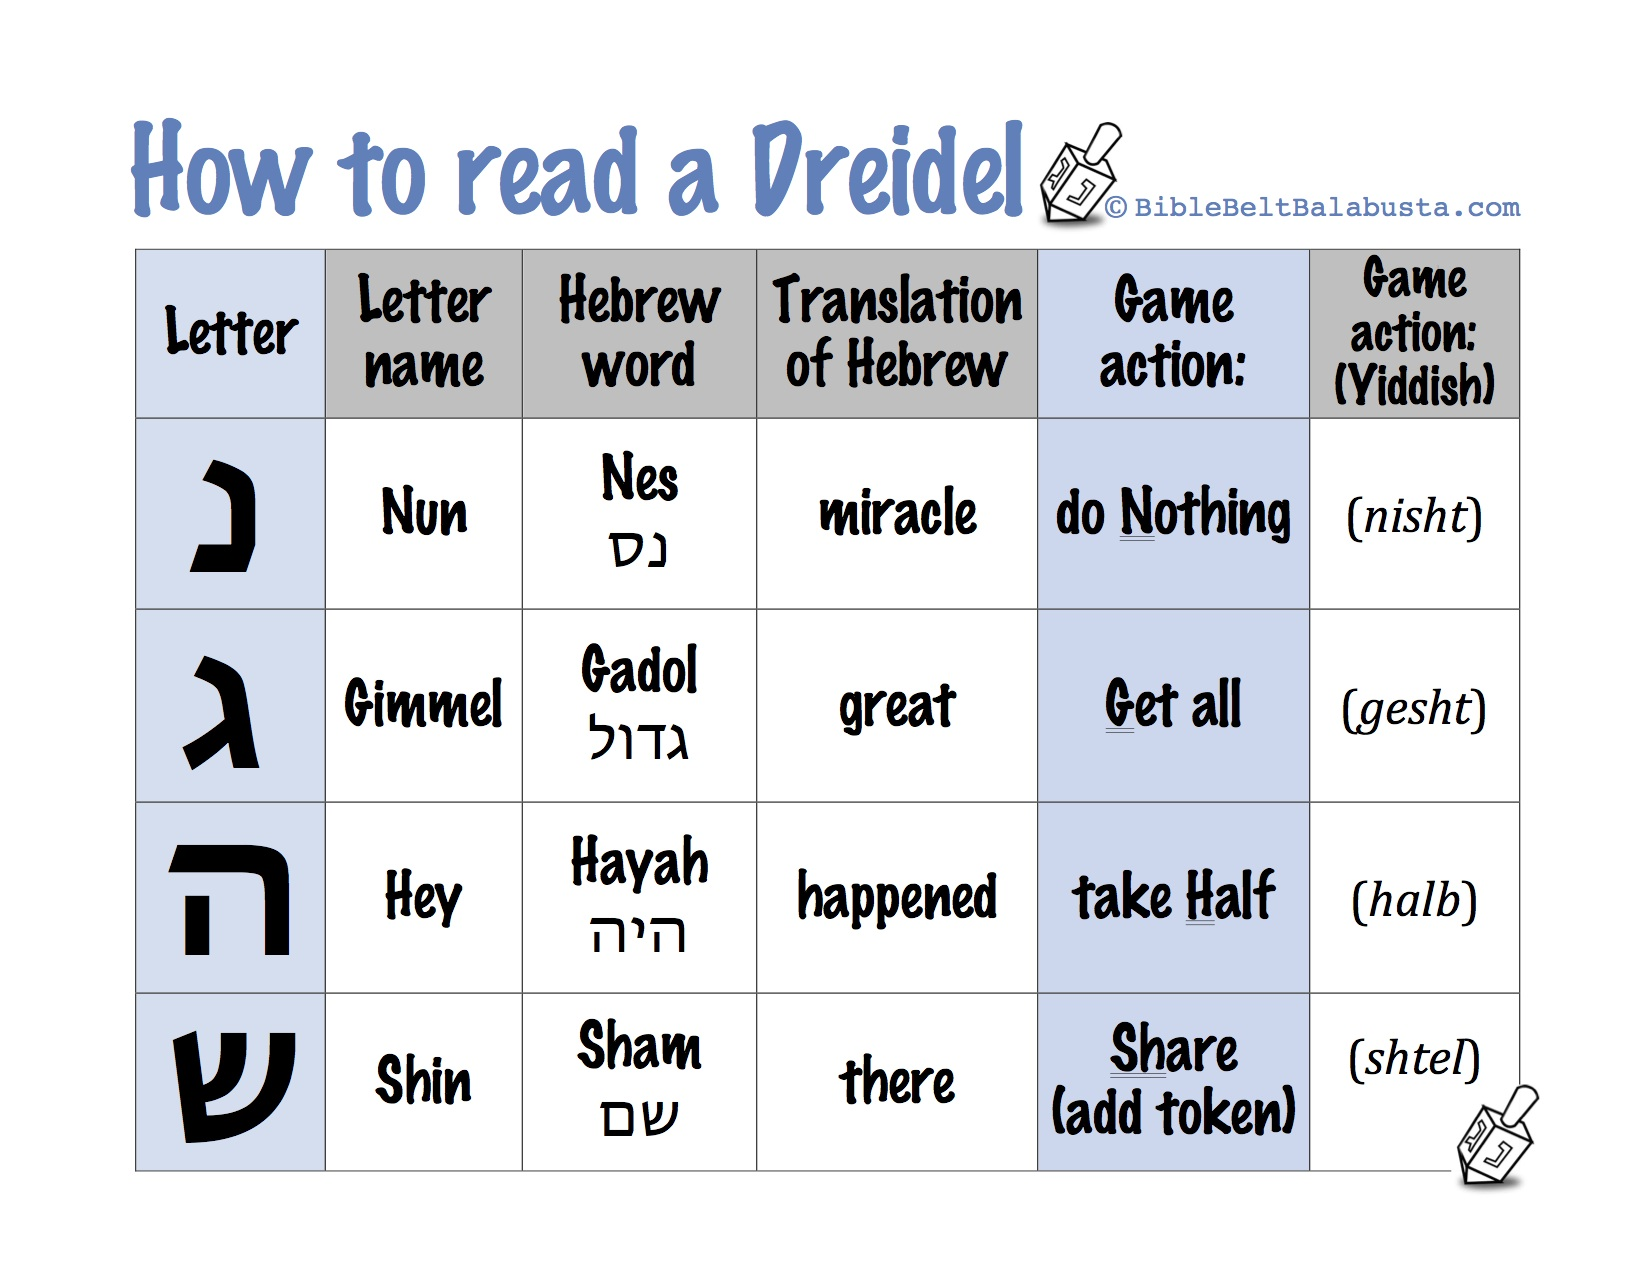 photo regarding How to Play the Dreidel Game Printable identify Printable Dreidel regulations, letter names and meanings Bible